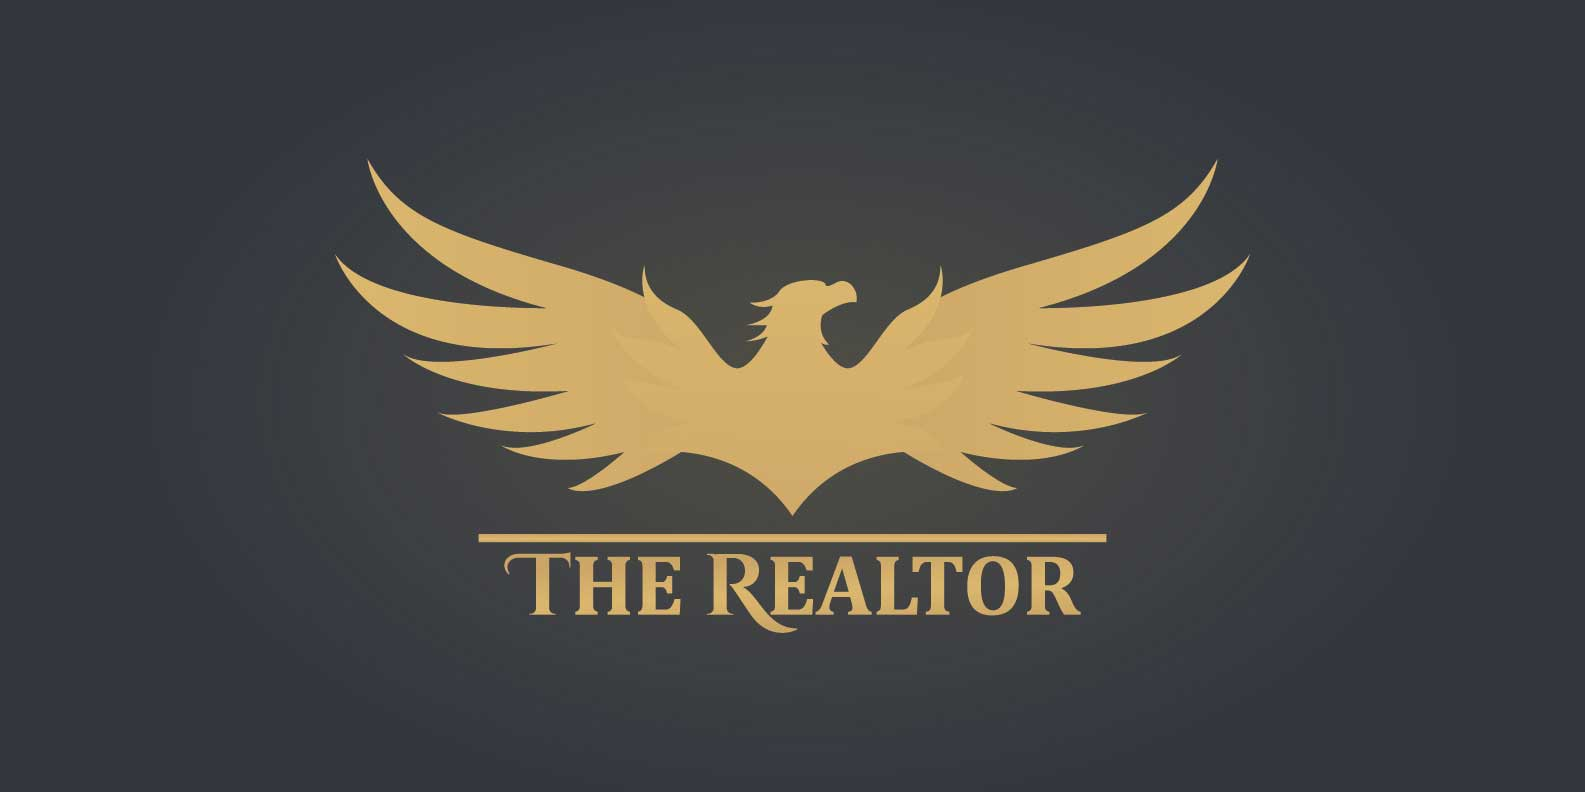 logo design service for The Realtor